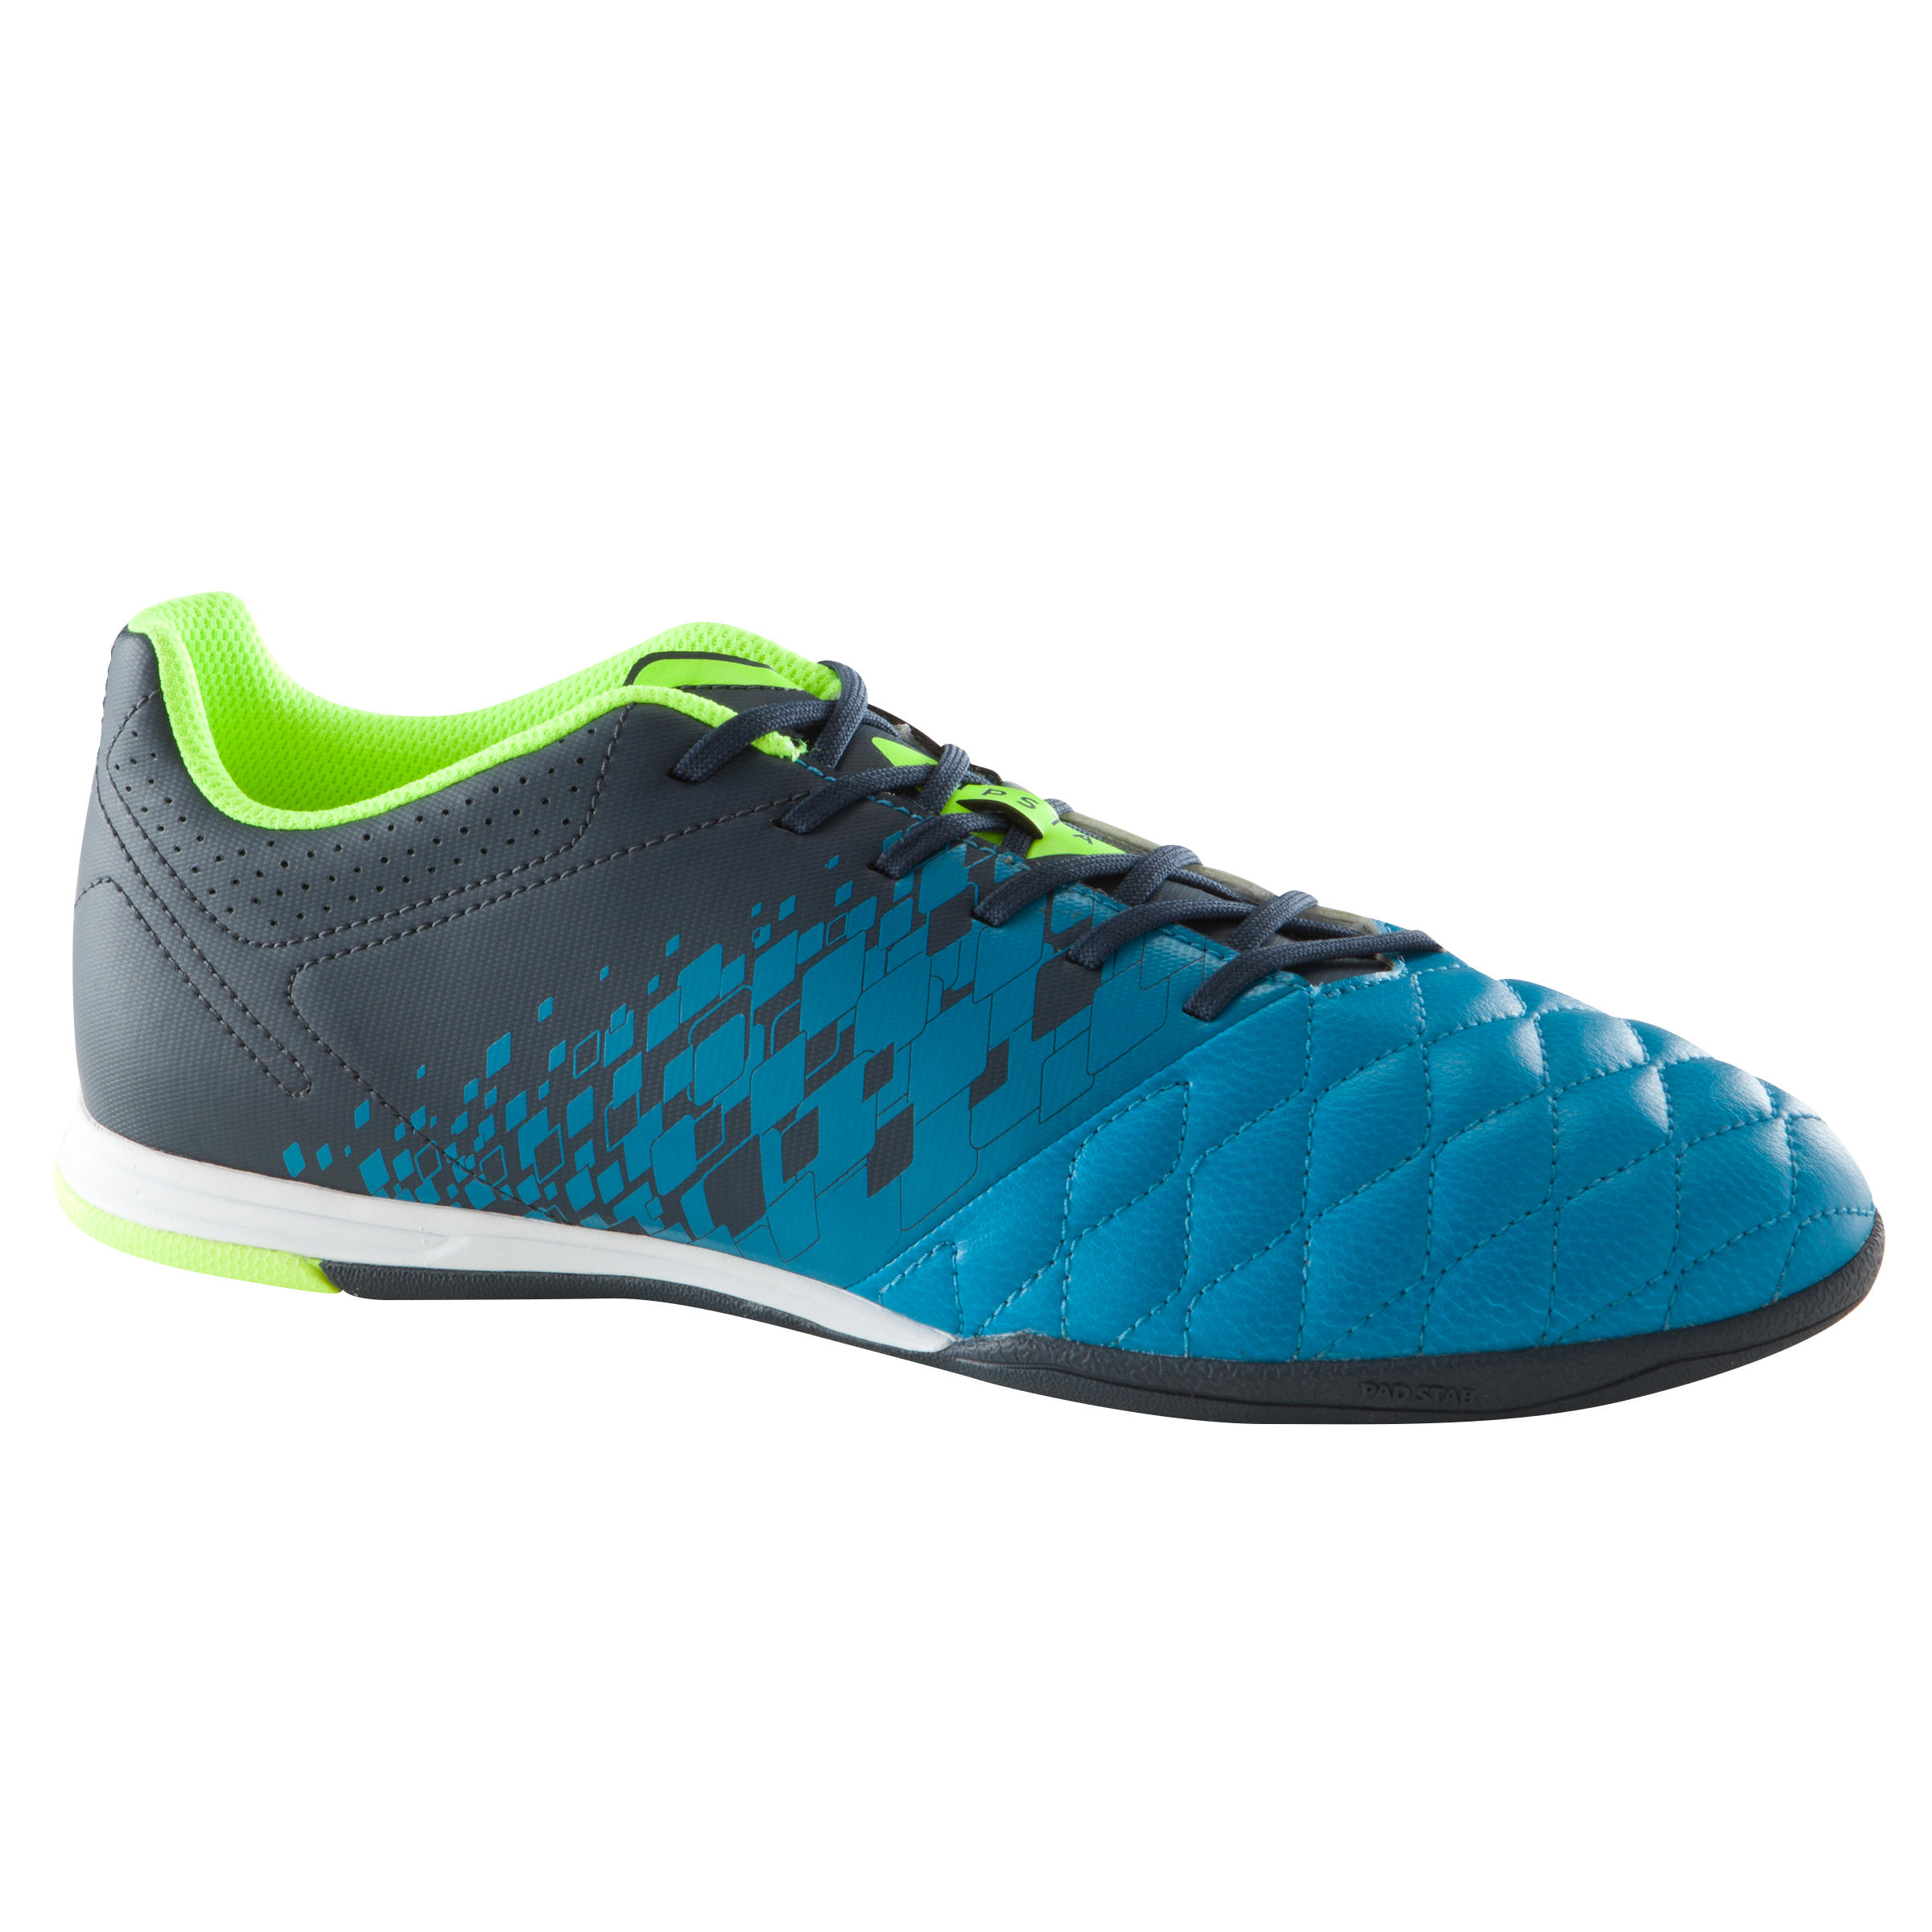 Agility 500 Sala Adult Futsal Boot - Blue